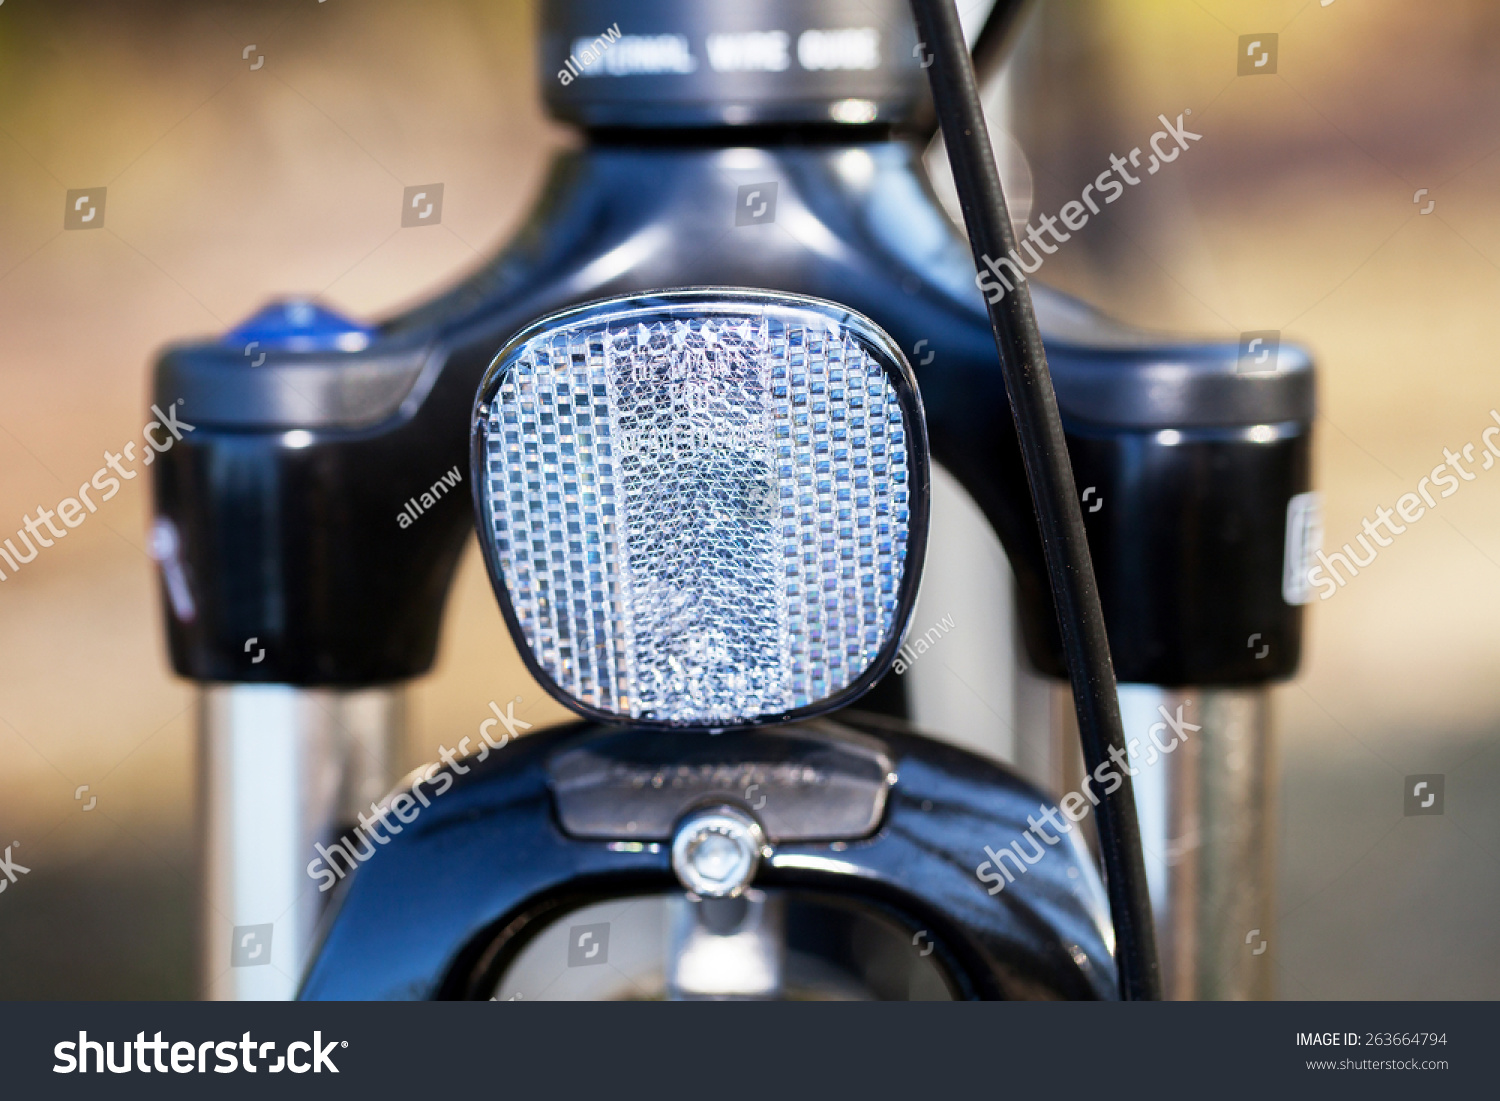 Holo Sweden March 20 2015 Bicycle Stock Photo 263664794 Shutterstock